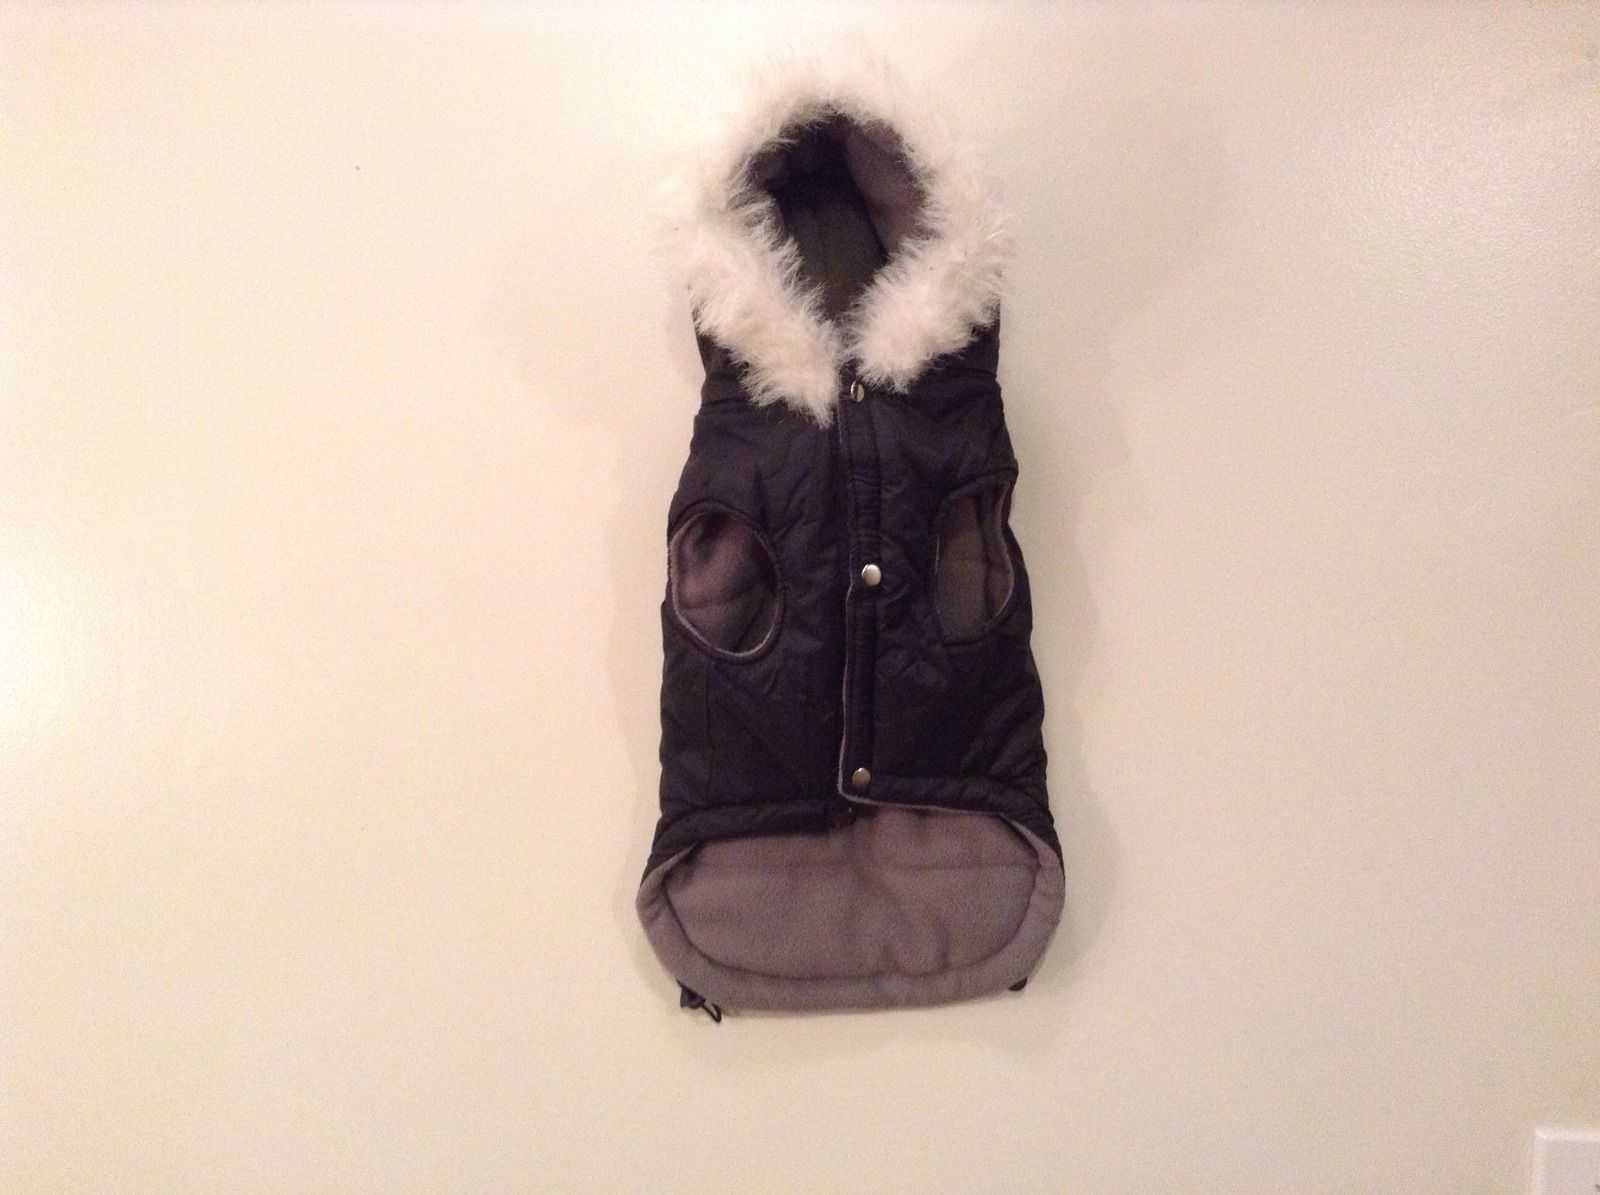 Dog It Black Winter Coat For Large Dog, Warm, Snowflakes